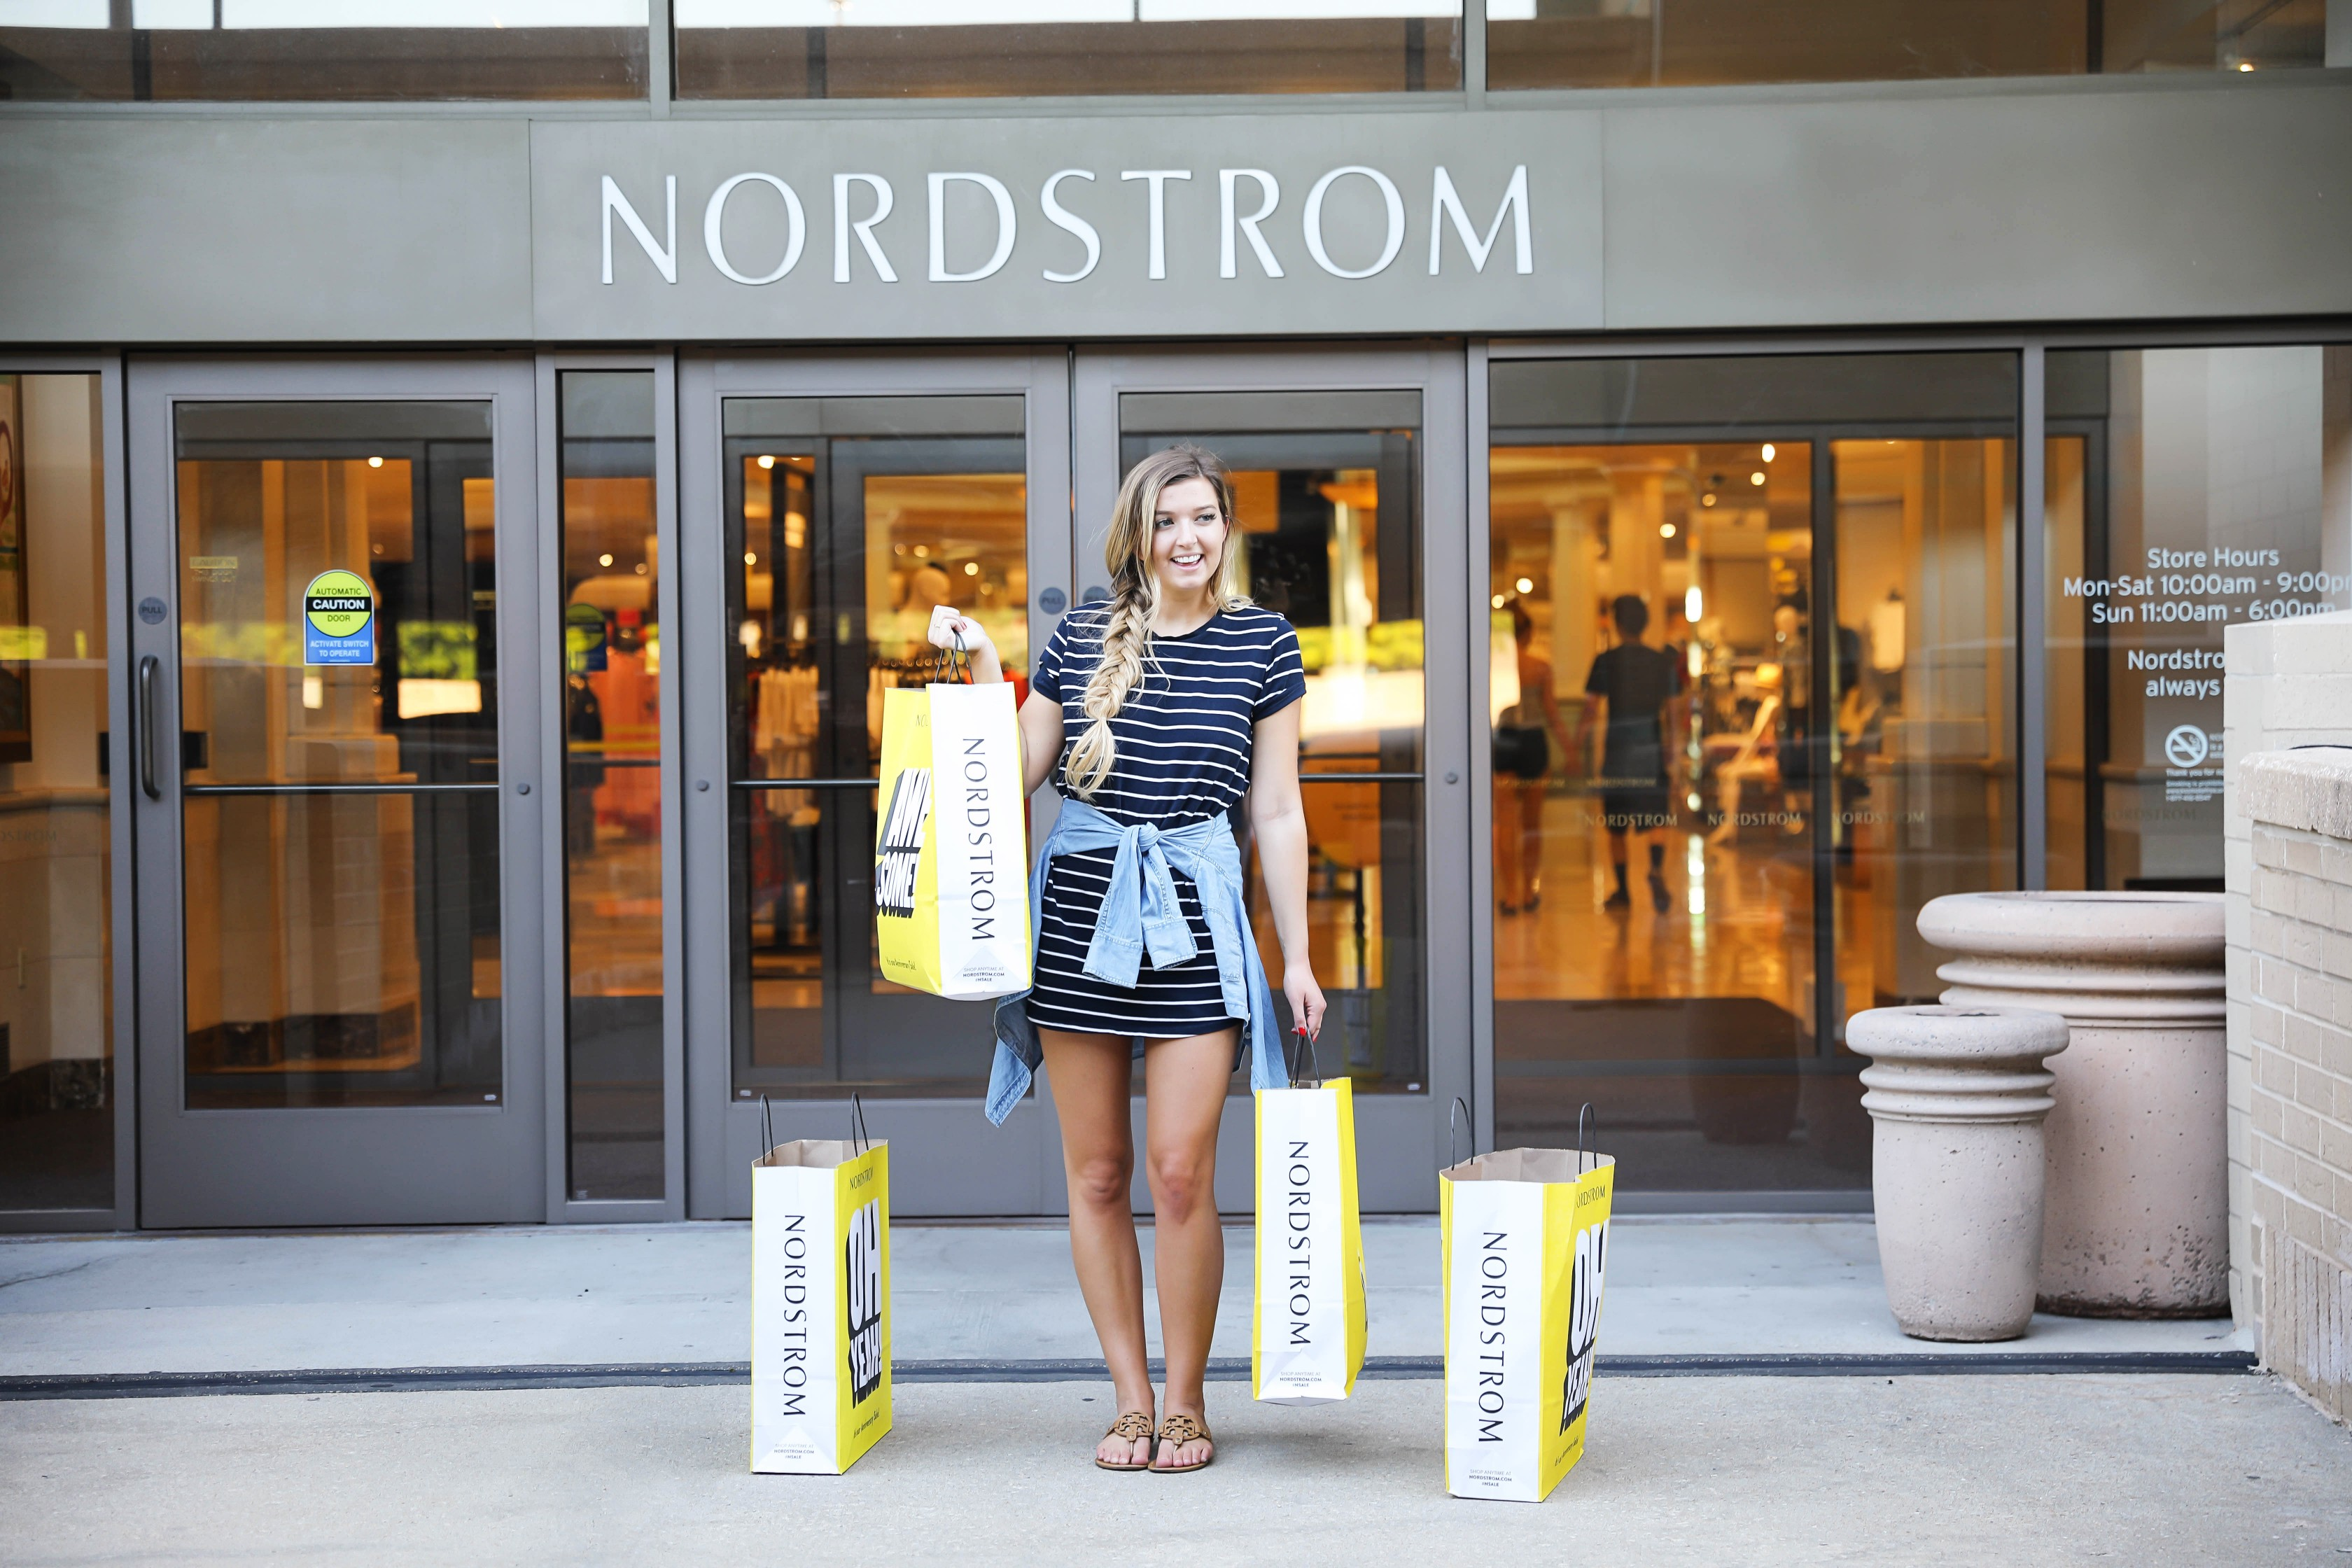 Nordstrom Anniversary Sale 2018! My favorites nordstrom sale picks this year! The cutest shoes, tops, dresses, pants, full outfits, accesories and more! Details on fashion blog daily dose of charm by lauren lindmark